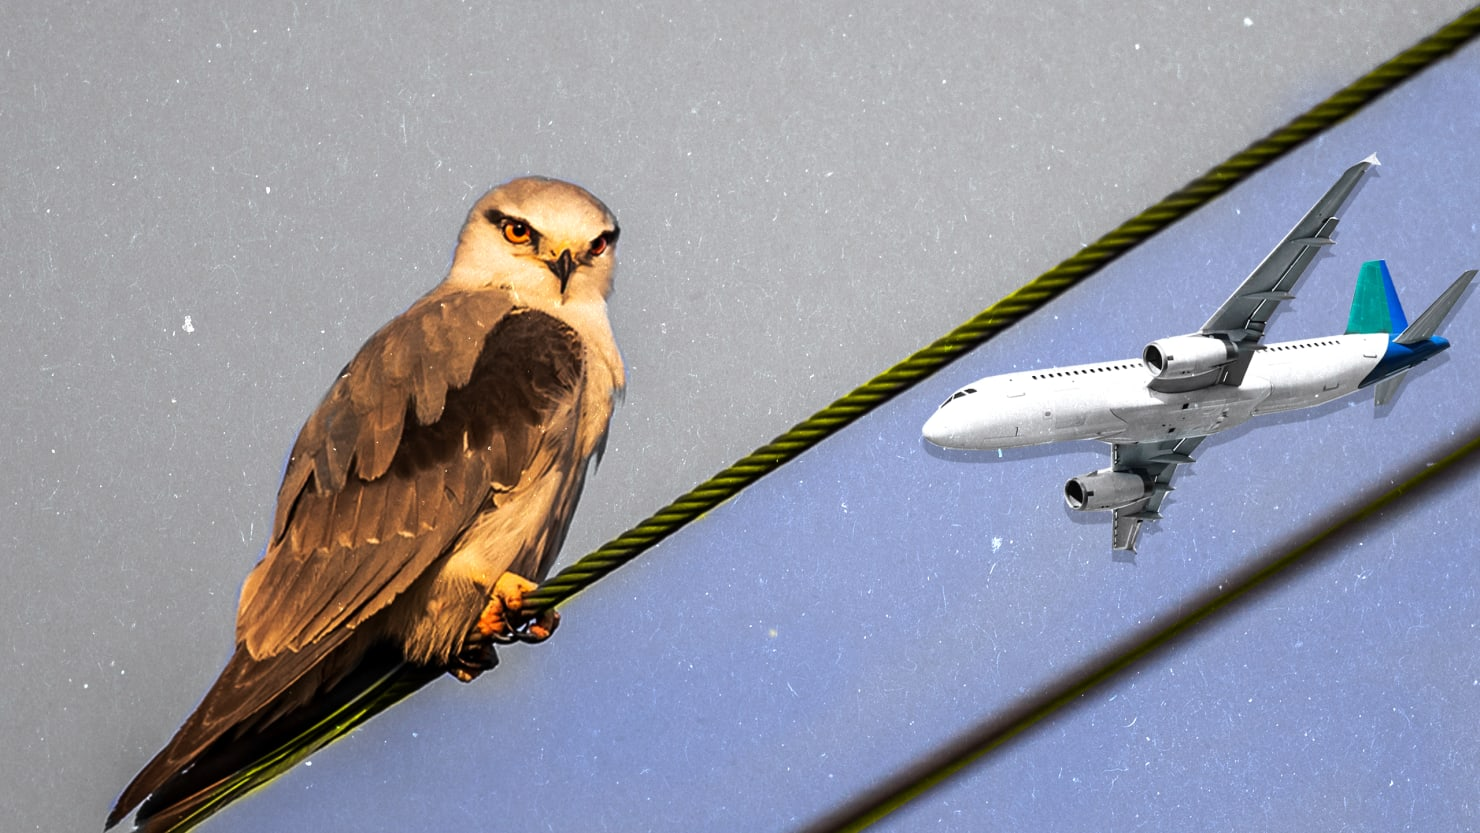 this bird drone can prevent airplane crashes